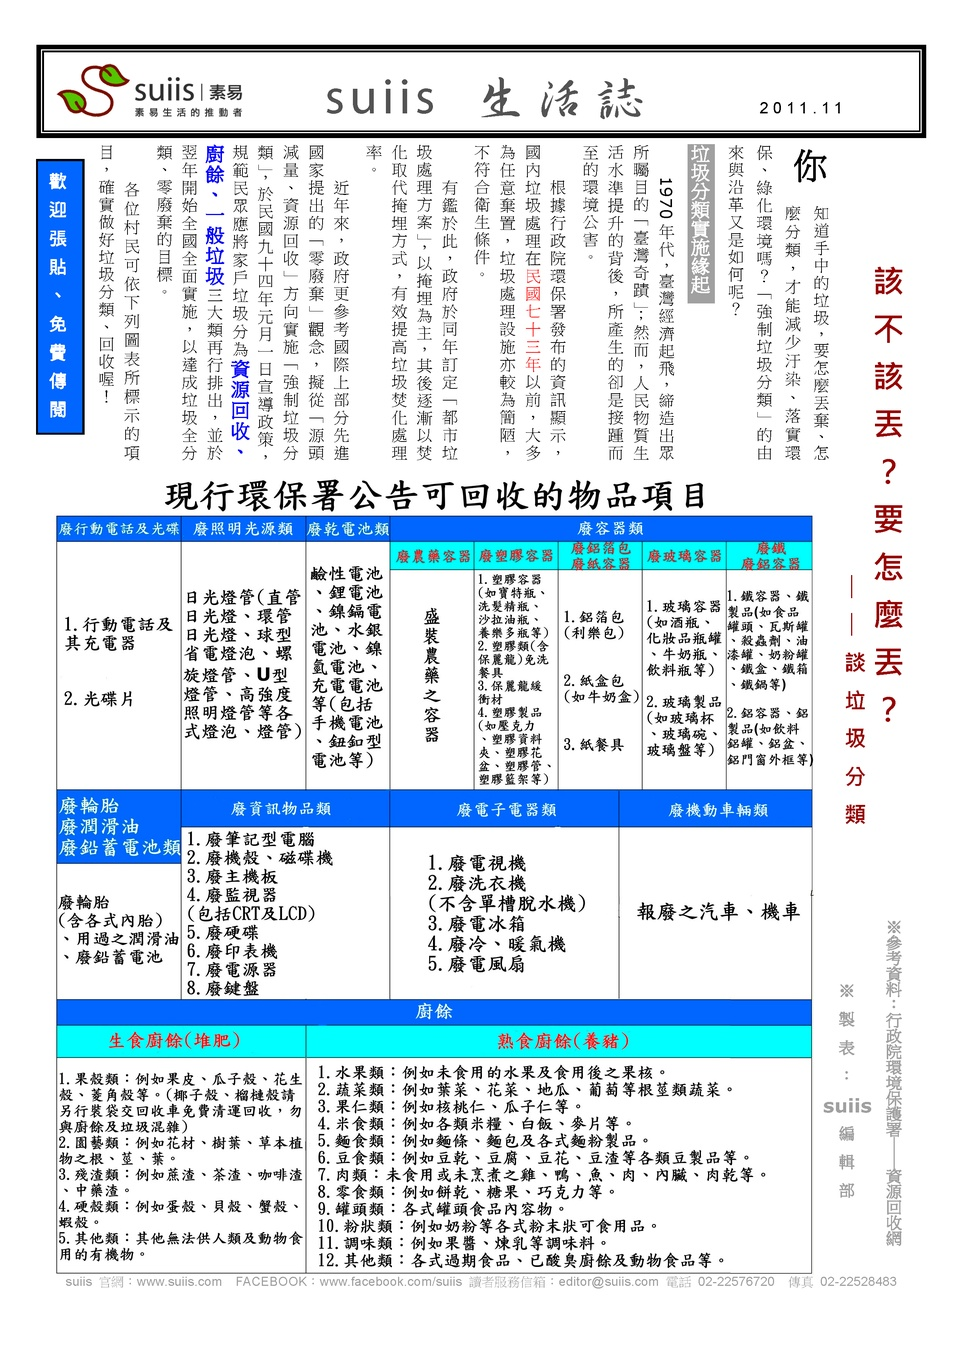 suiis 生活誌-2011-11_Page_1